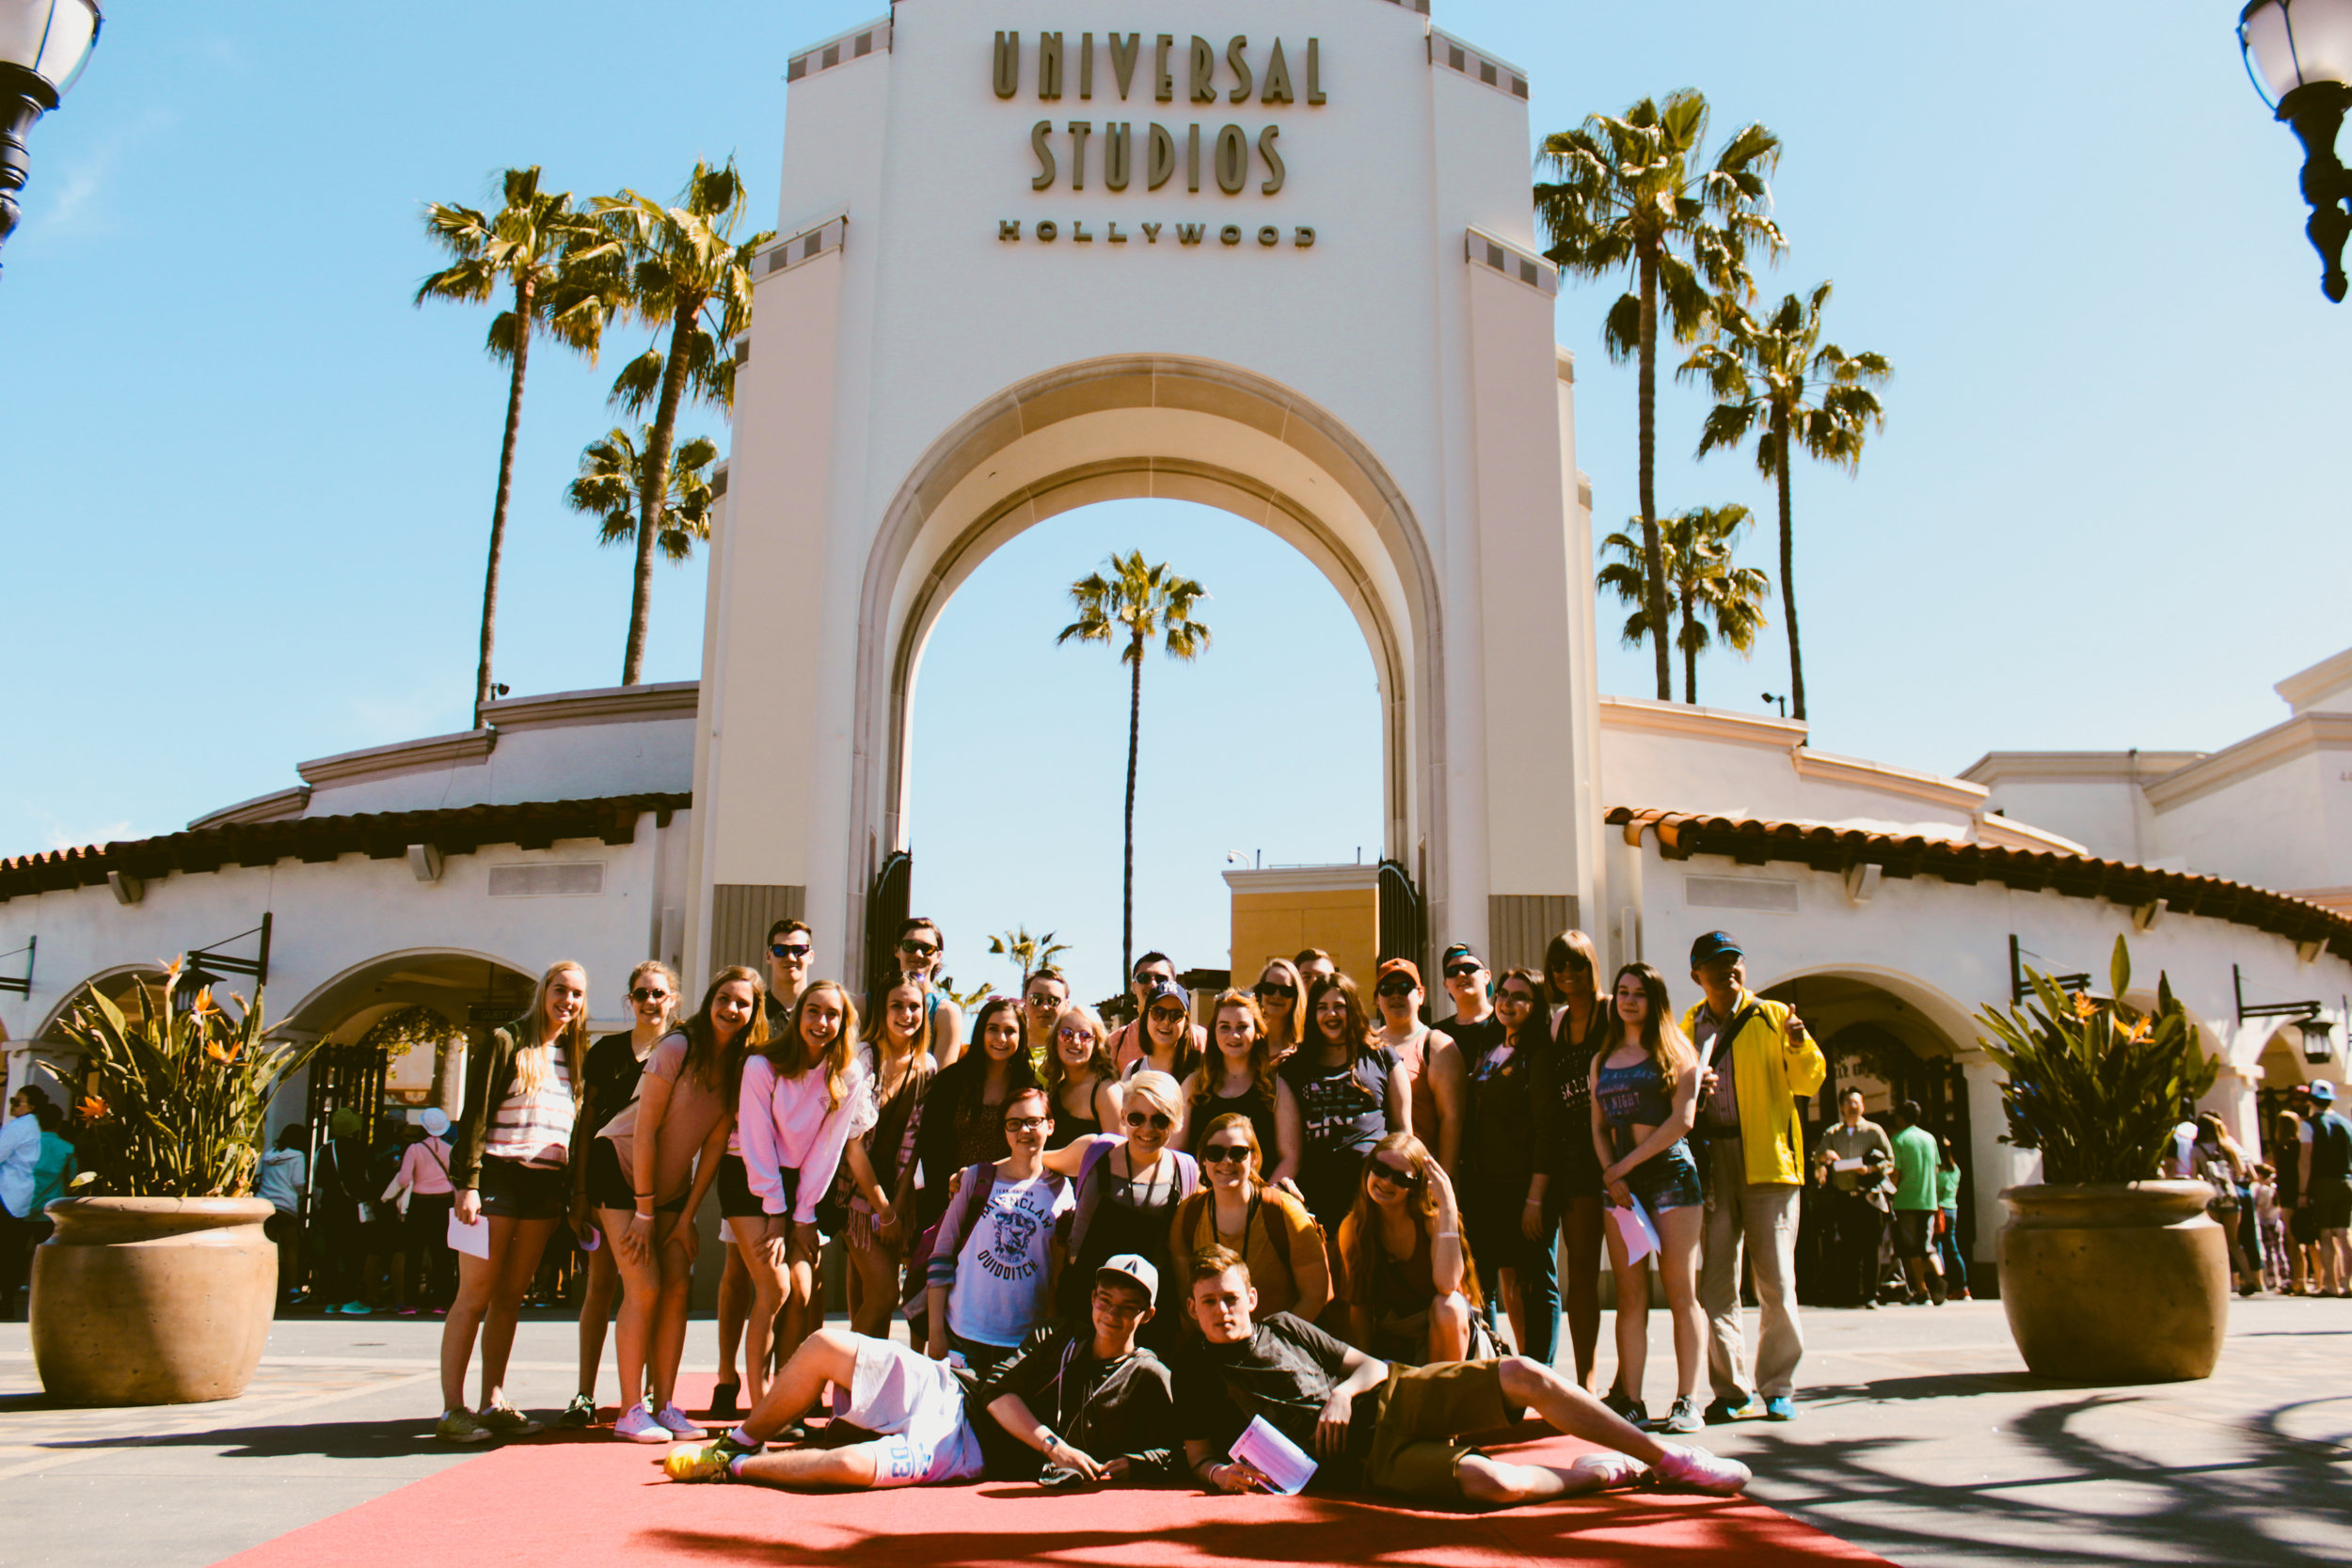 Universal Studios is another highlight